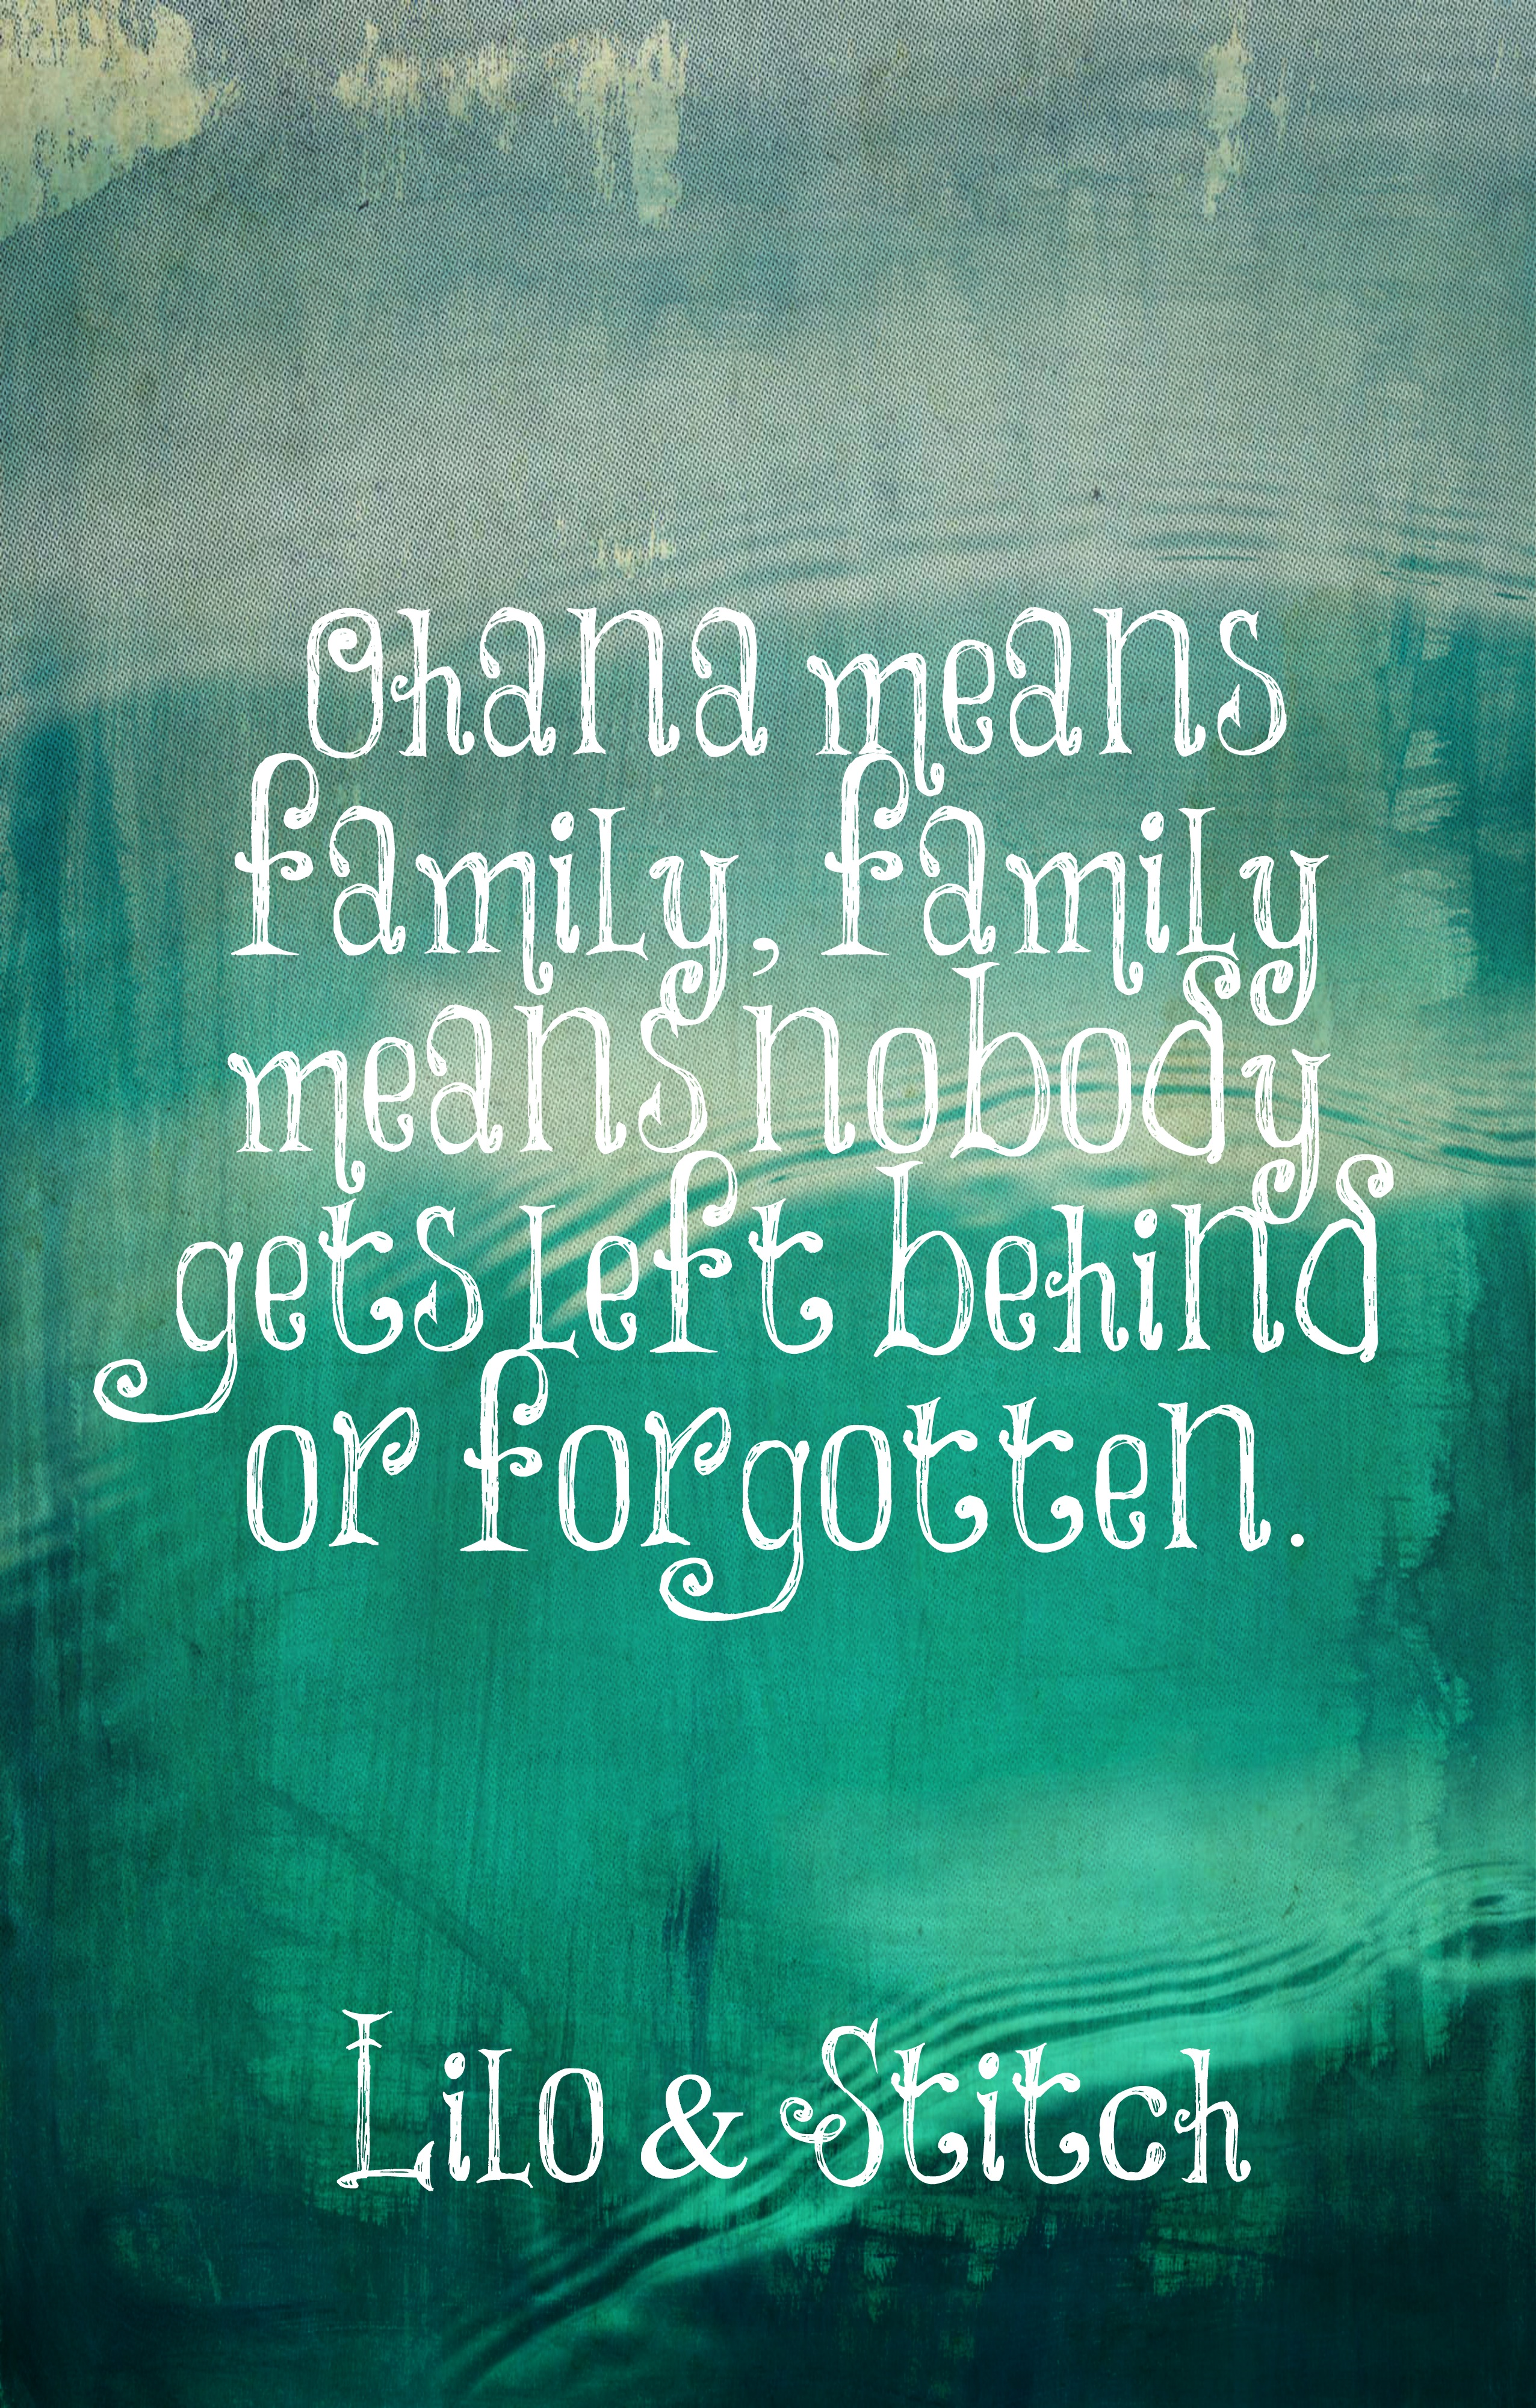 And Everything Else Too All Kinds Of Neighbors: Family Means Everything Quotes. QuotesGram